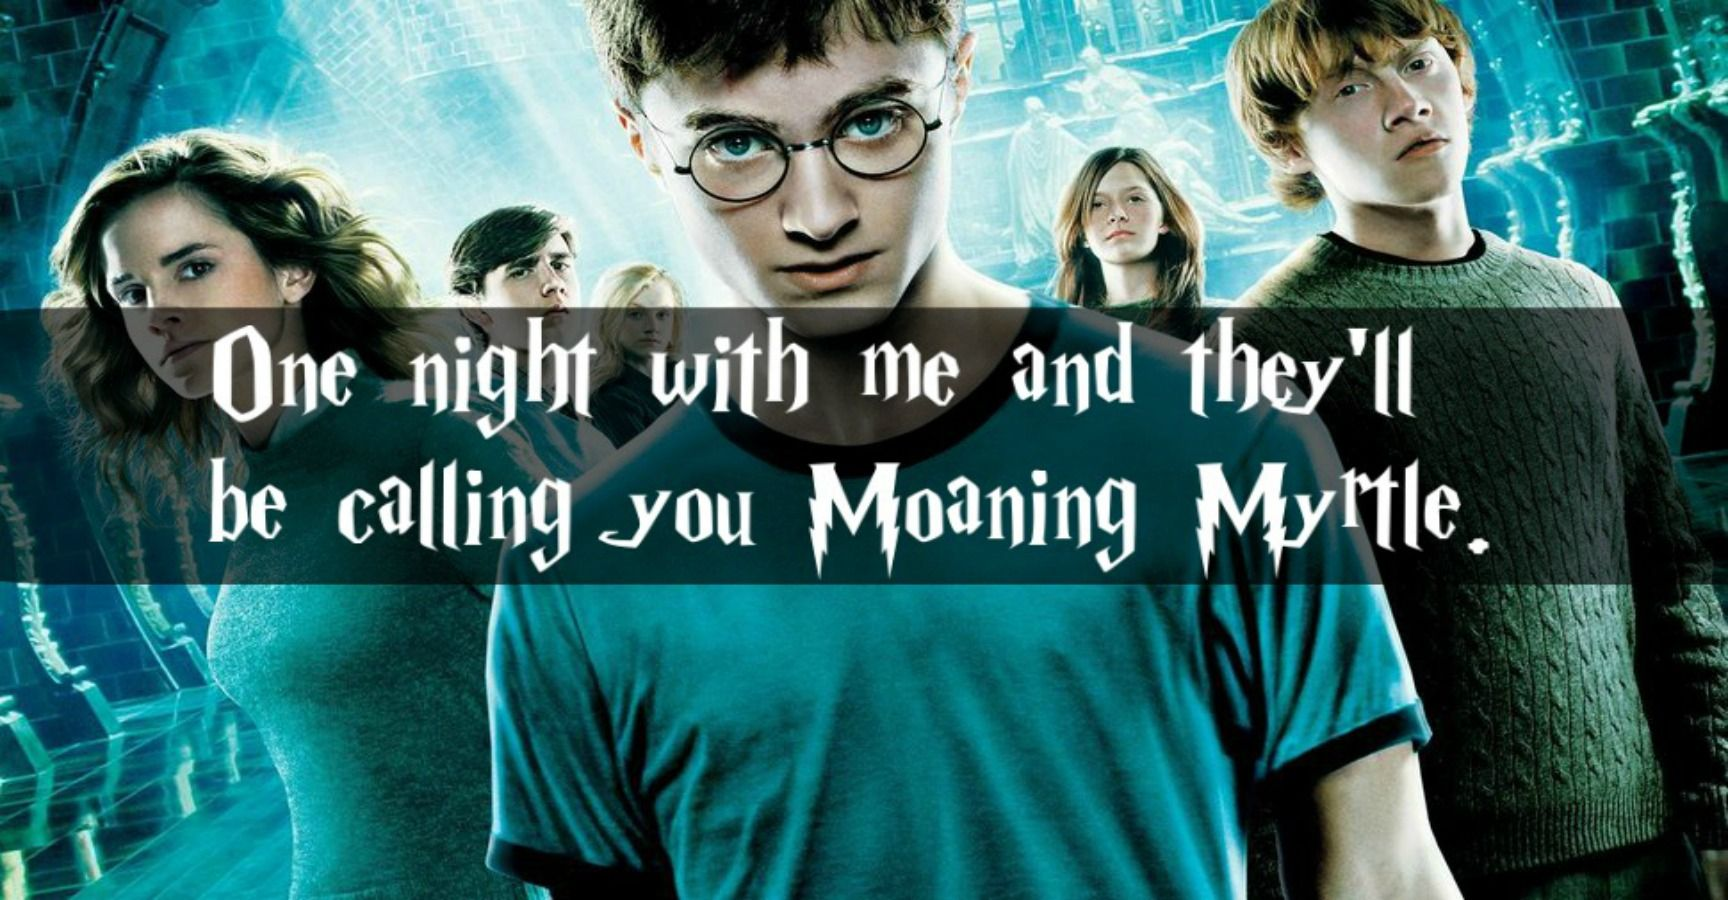 15 'Harry Potter' Pickup Lines That Will Absolutely Destroy